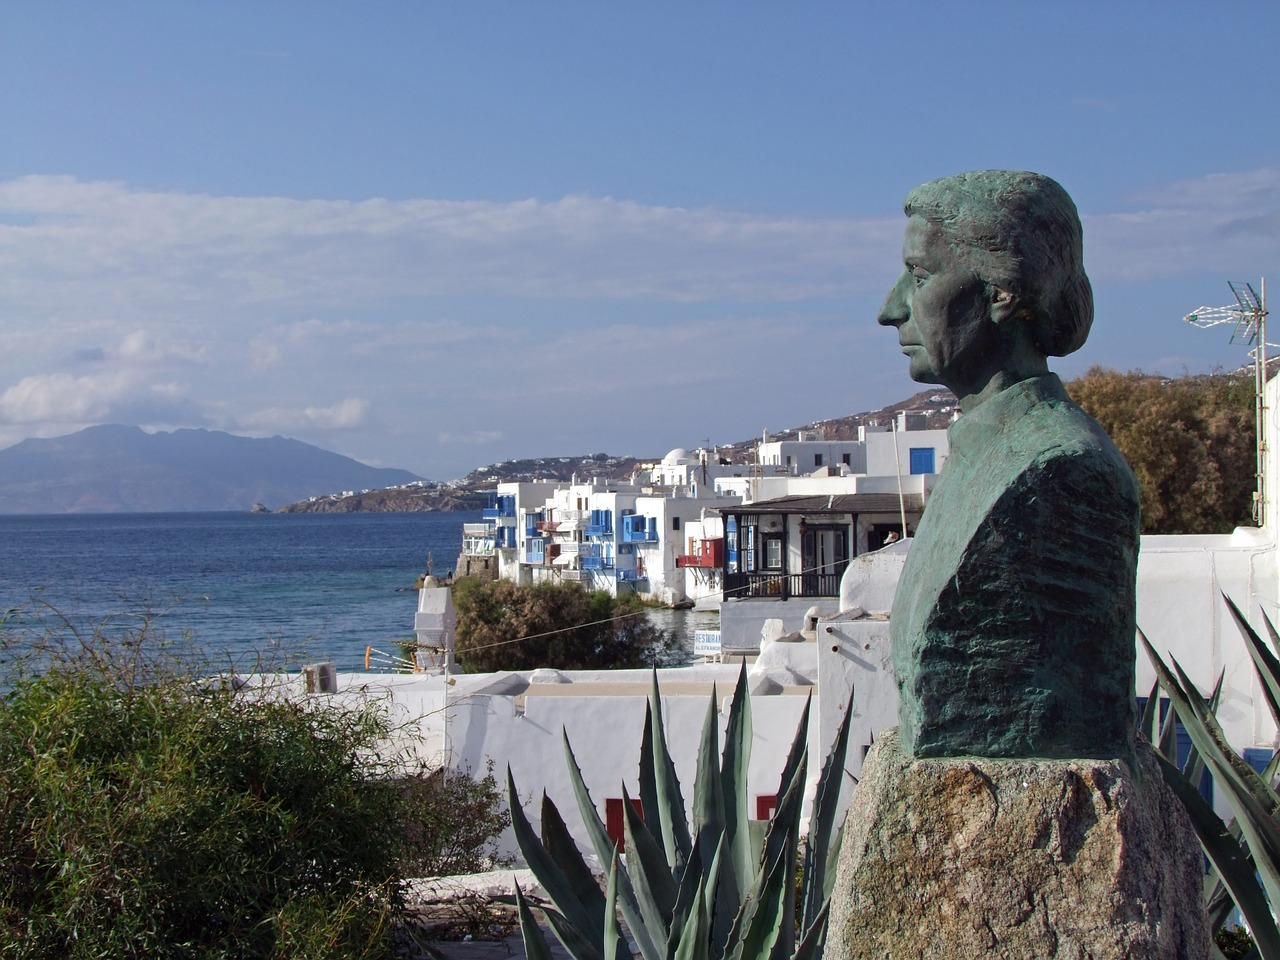 statue looking sternly over mykonos